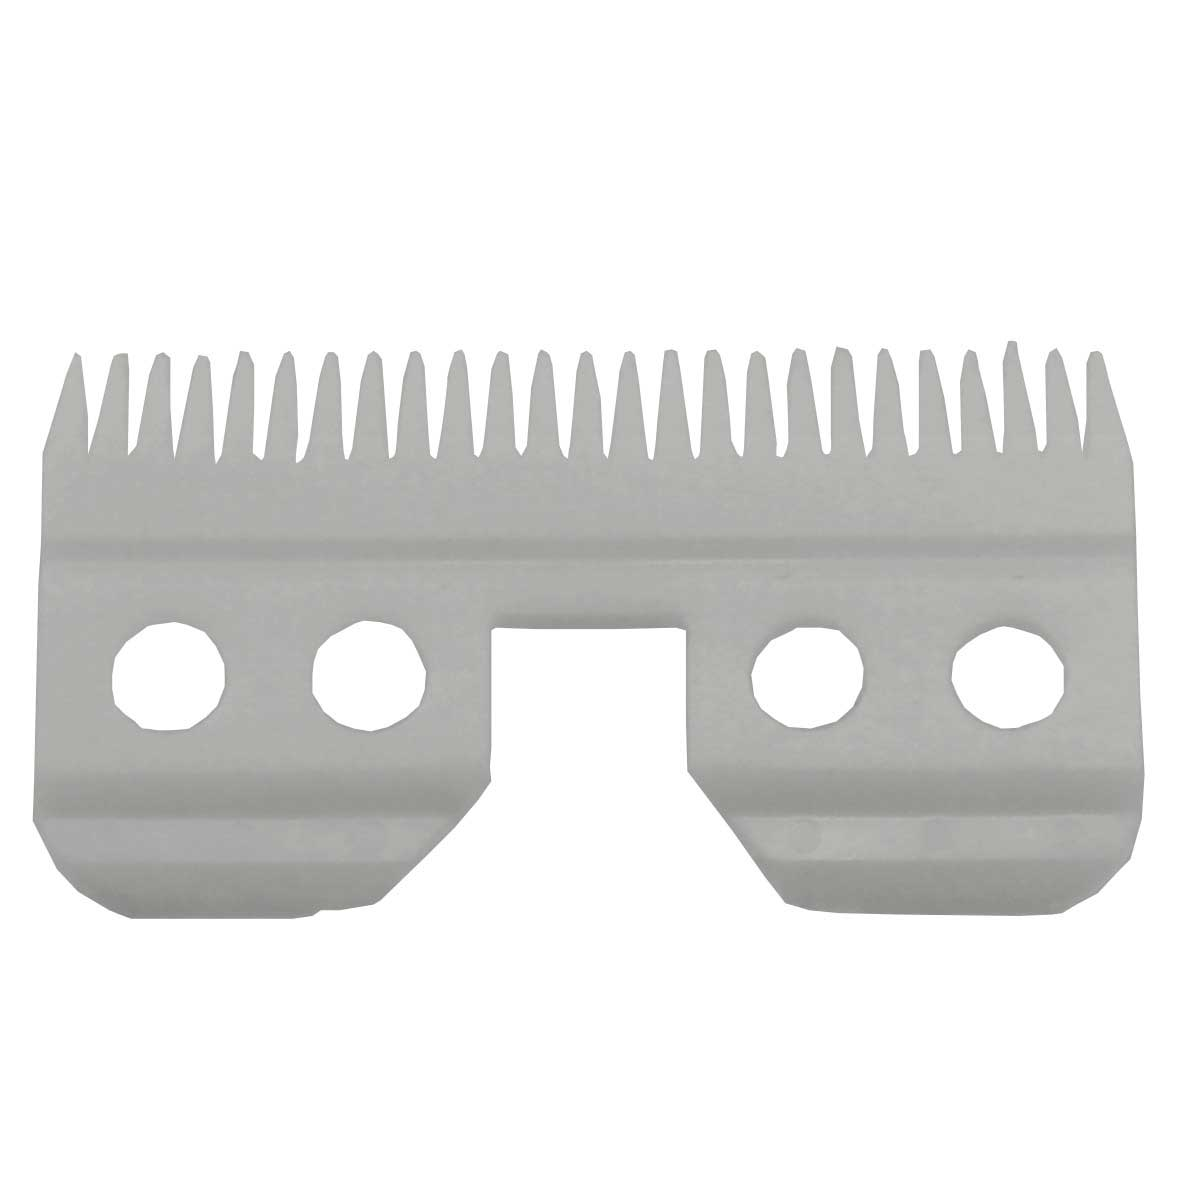 Value Groom Ceramic Cutter - For #40 Blade Only